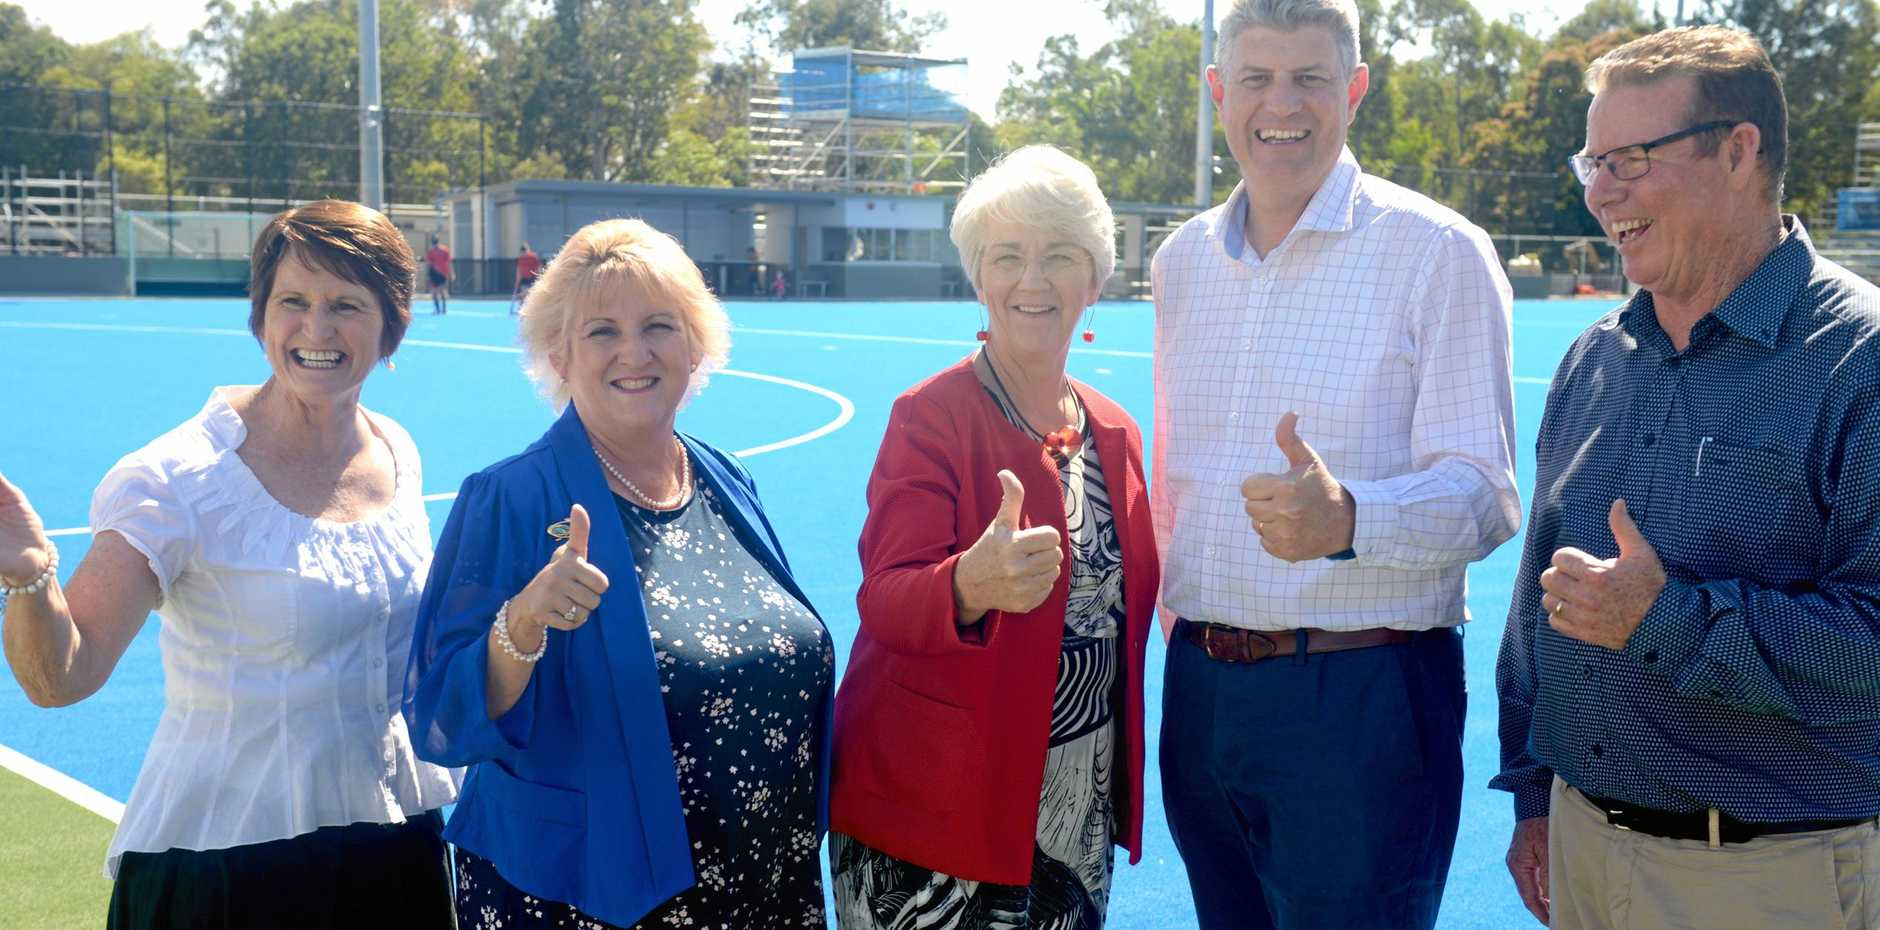 THUMBS UP: Rockhampton Hockey Association president Barbara Knowles, Capricornia MP Michelle Landry, Mayor Margaret Strelow, Local Government Minister Stirling Hinchliffe and Rockhampton MP Barry O'Rourke at the new hockey field.